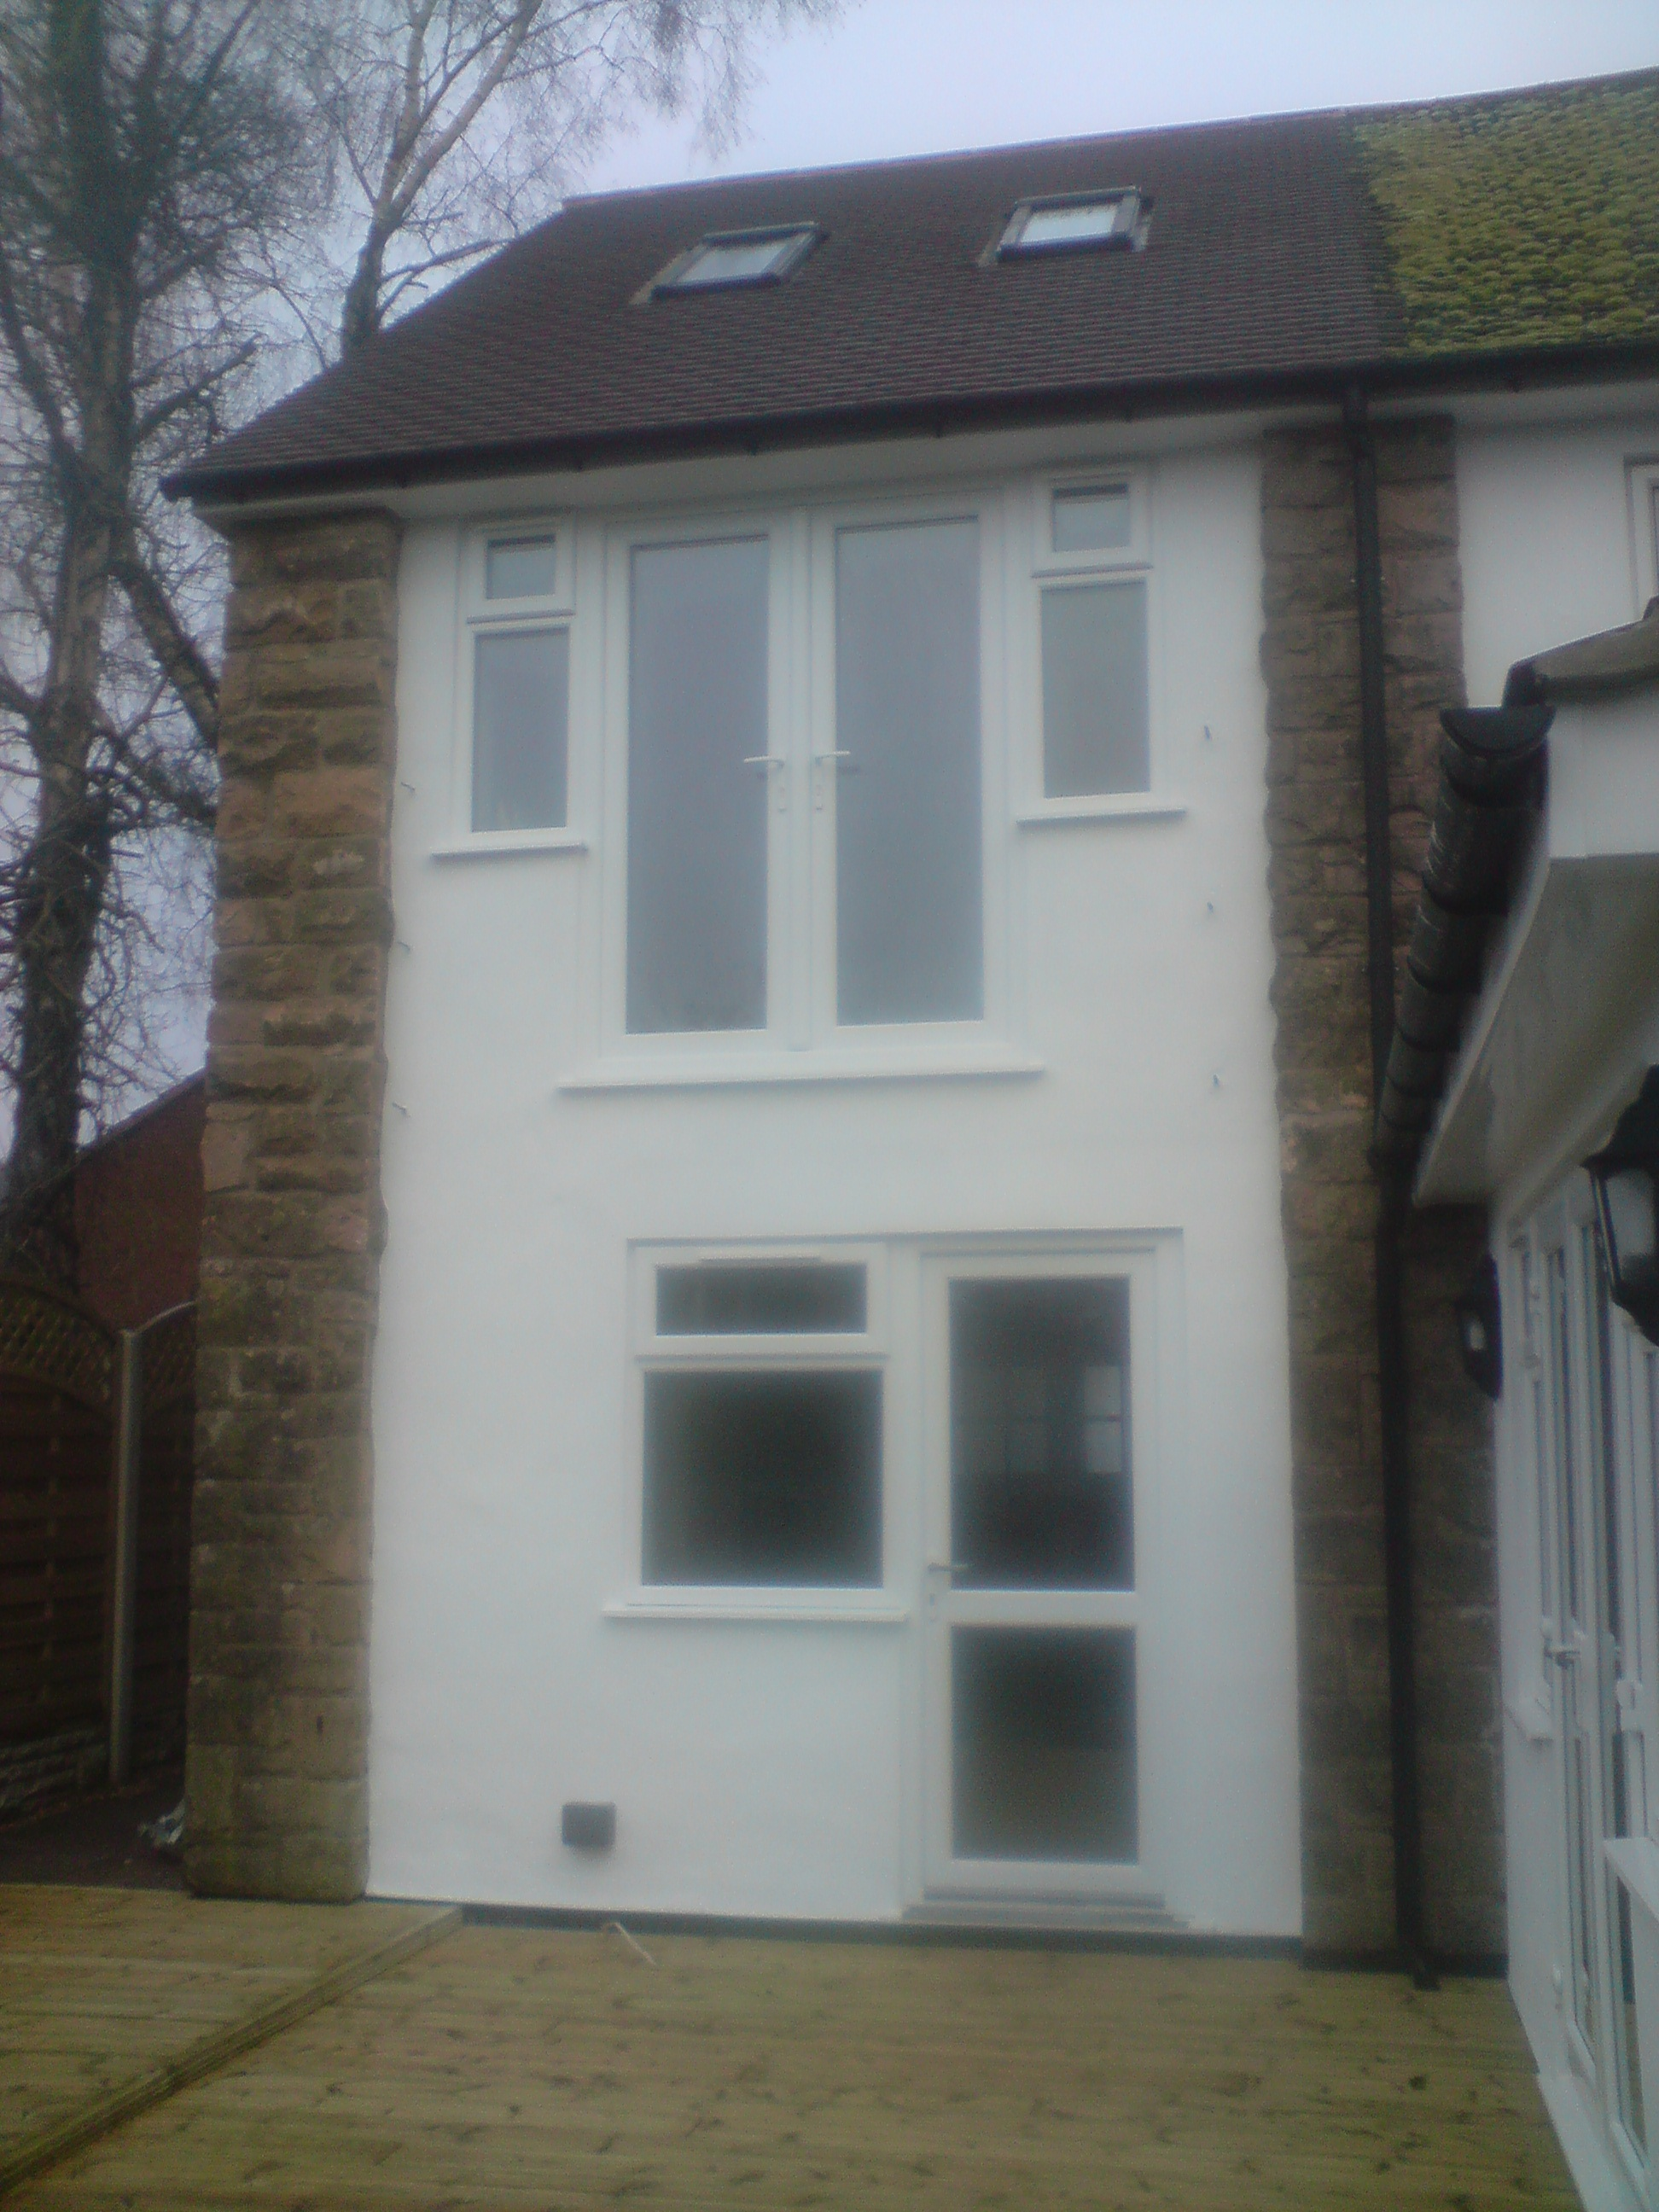 2 Storey Extension.JPG